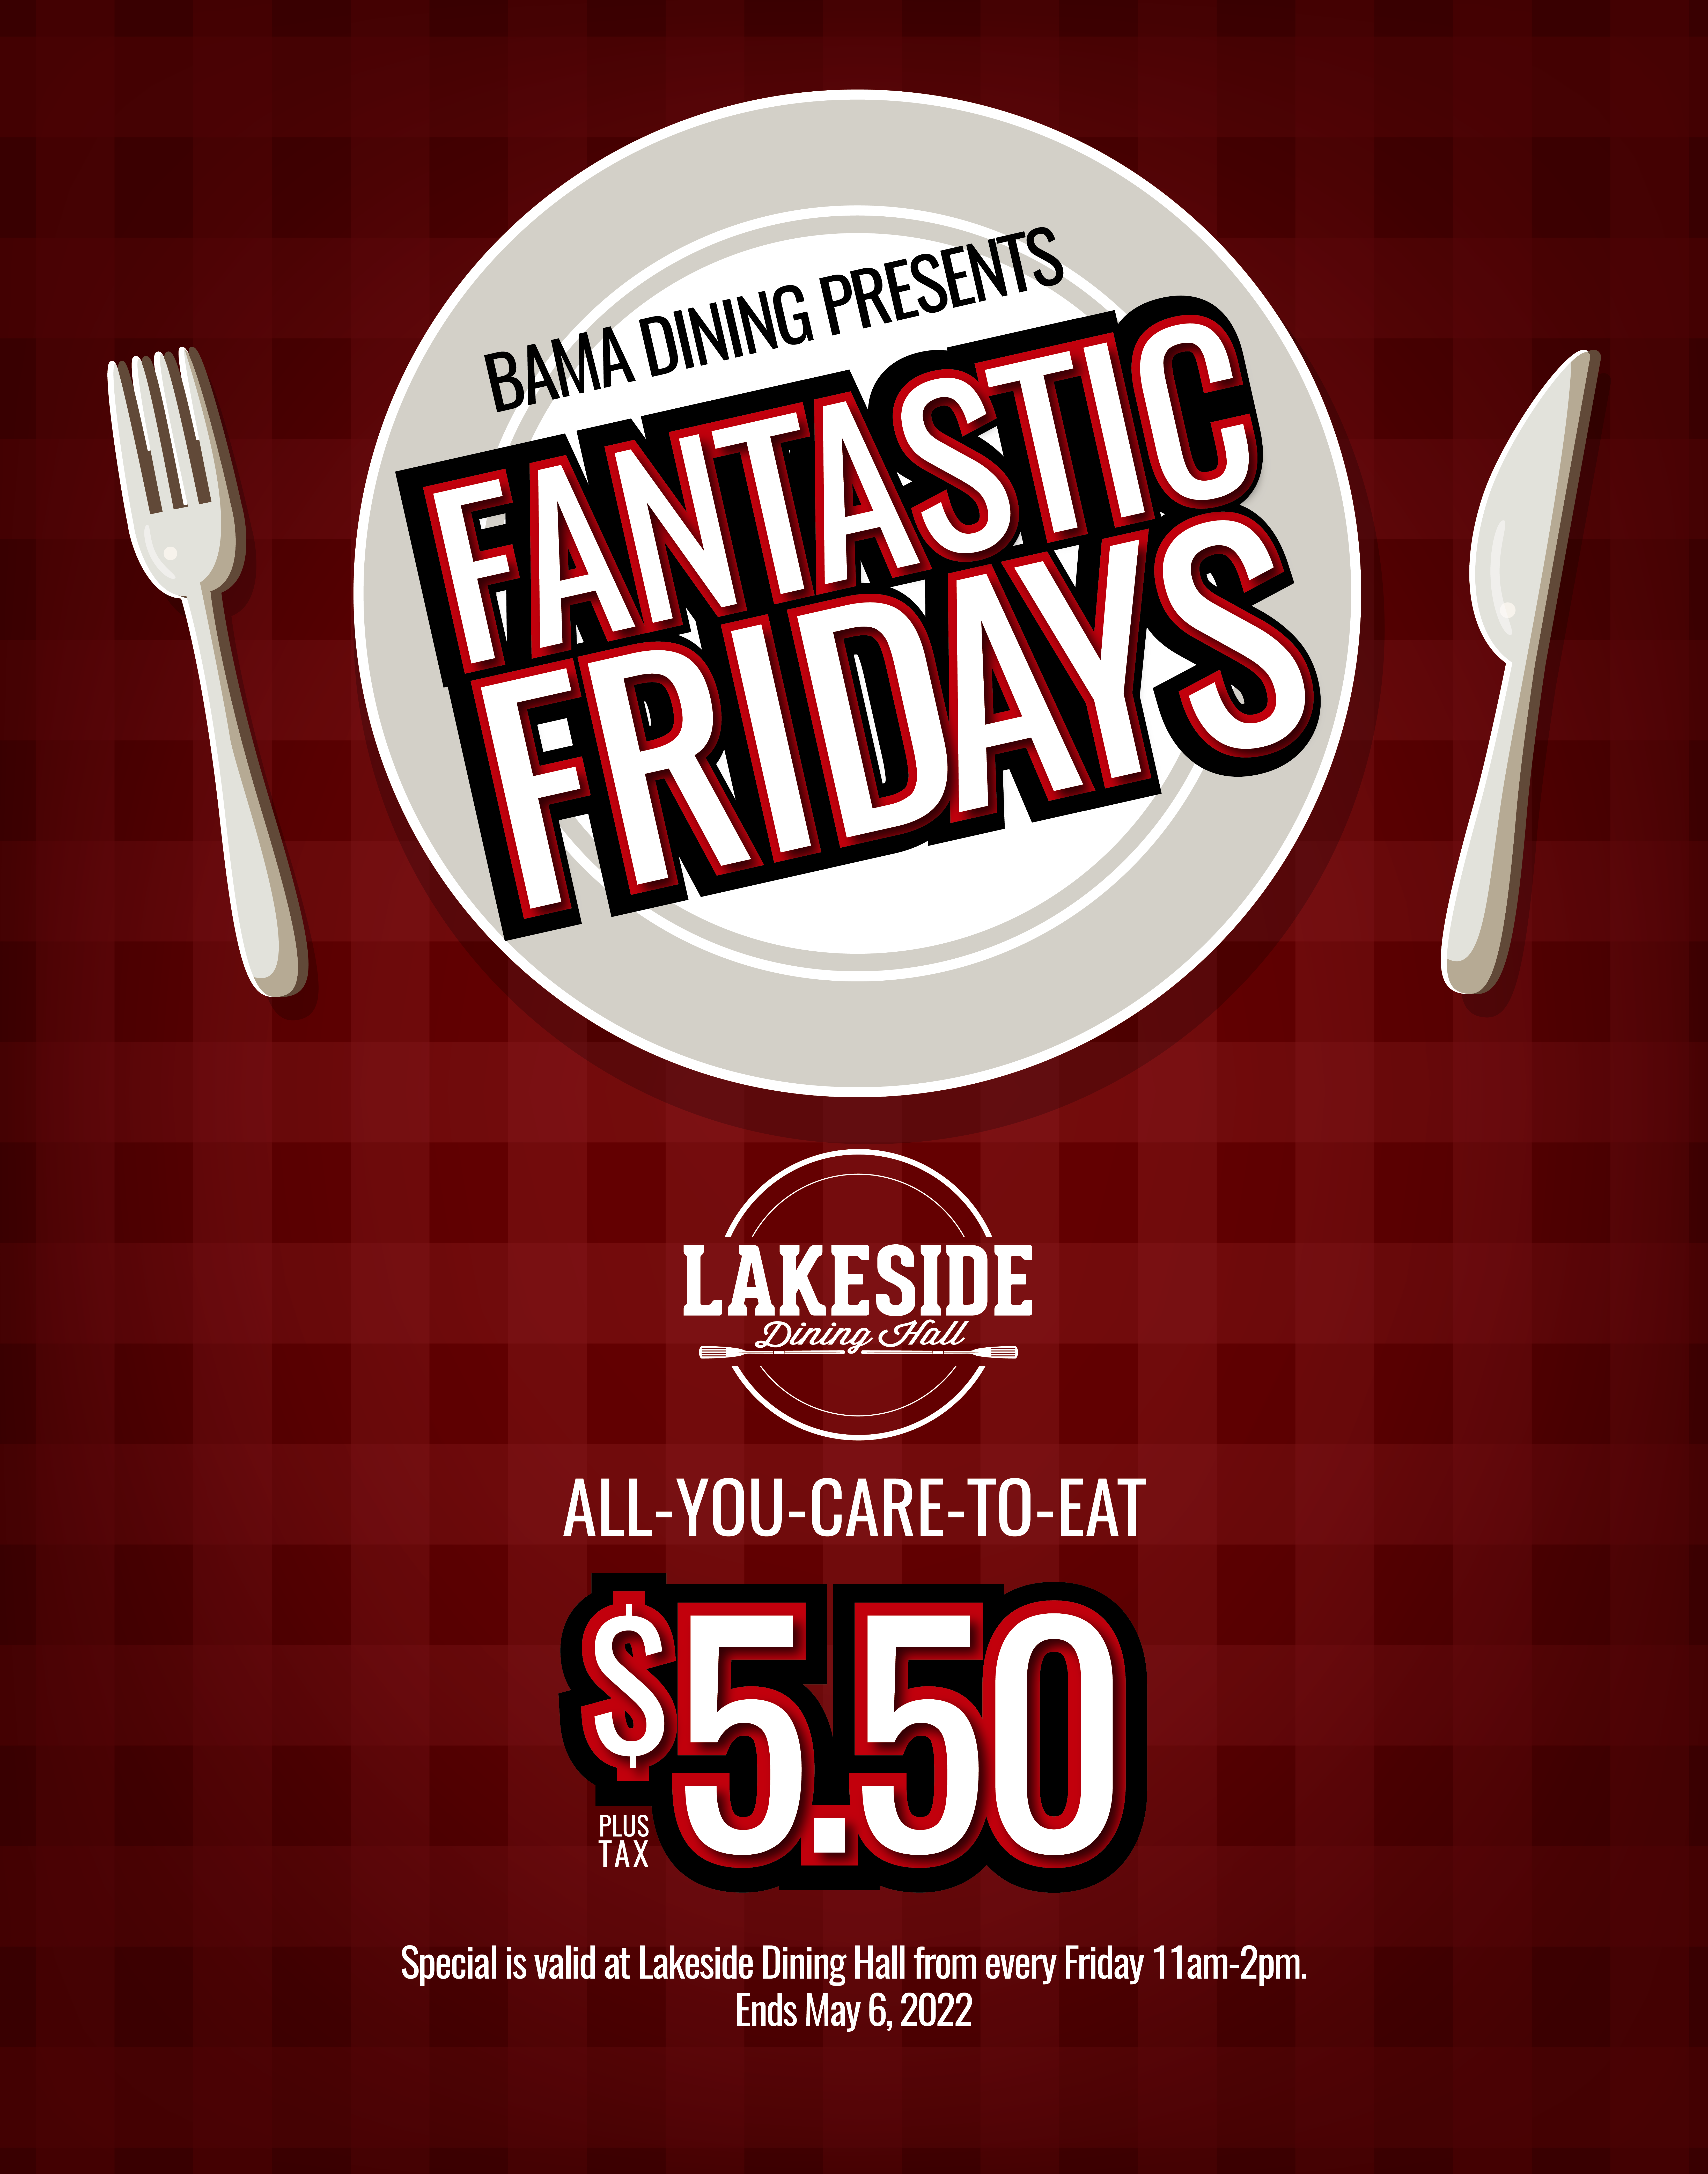 $5.50 All-you-care-to-eat at Lakeside Dining every Friday 11am-2pm. Ends May 6, 2022.